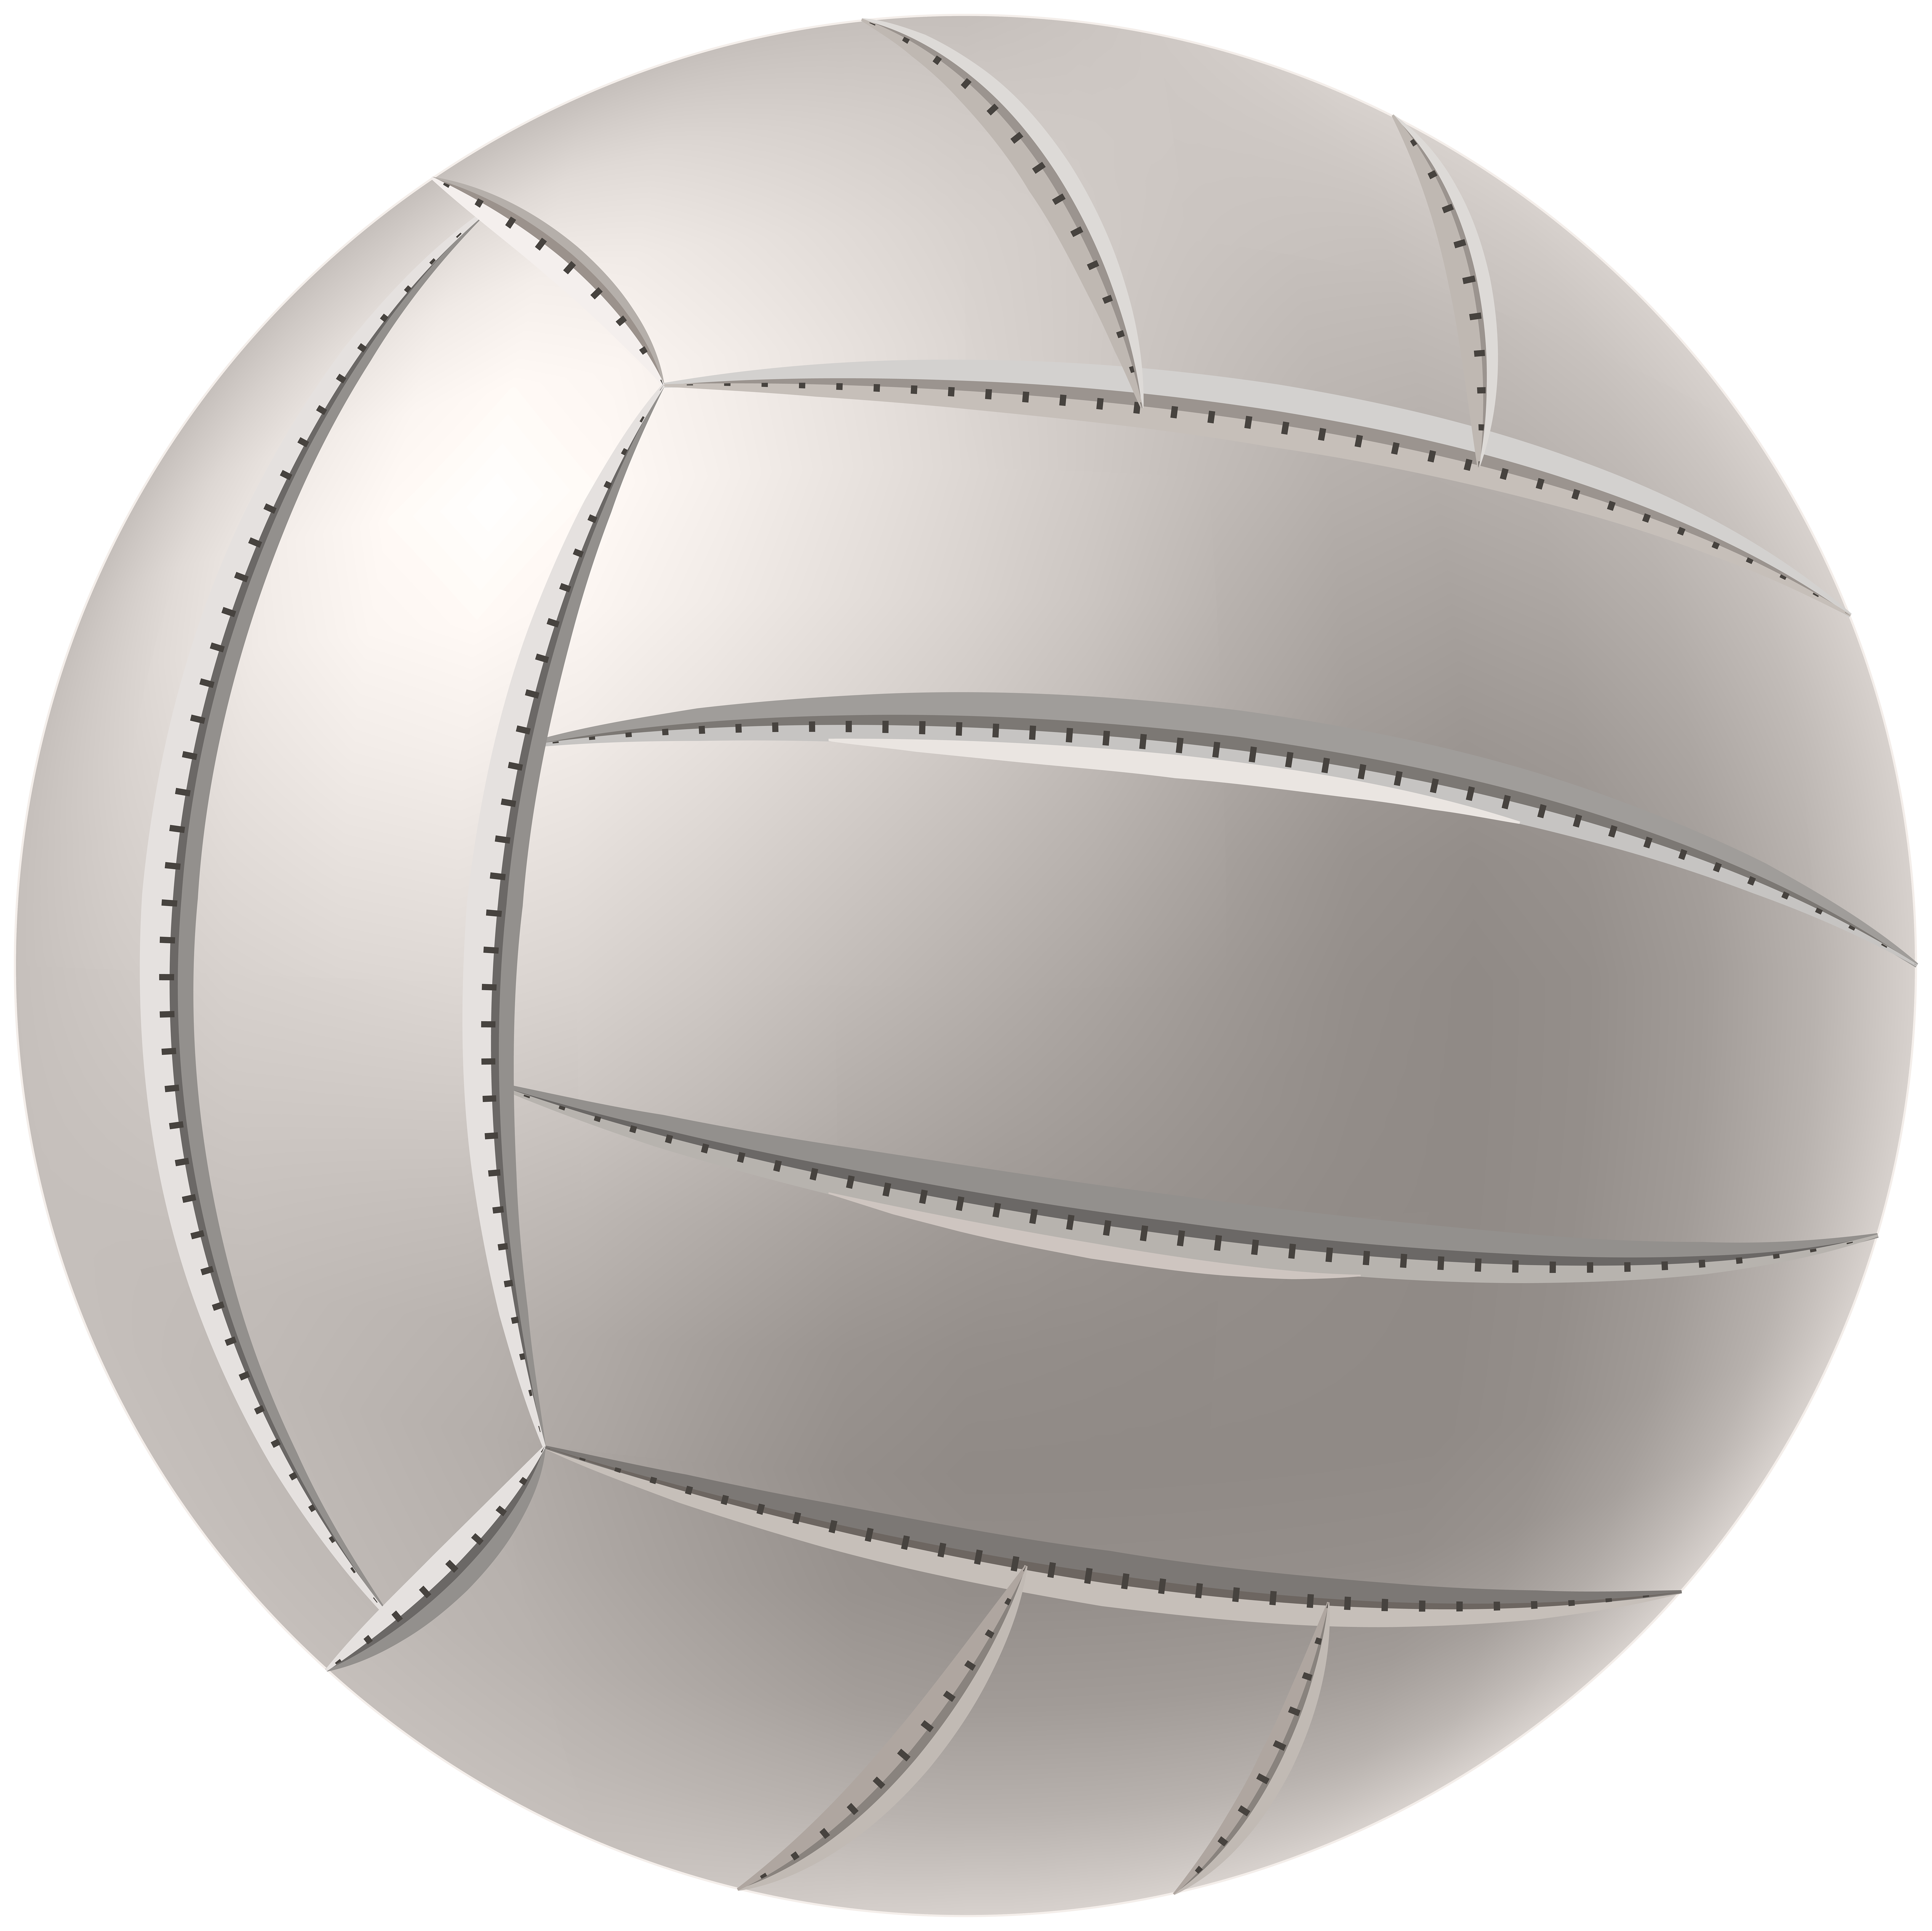 Png clip art image. Fire clipart volleyball